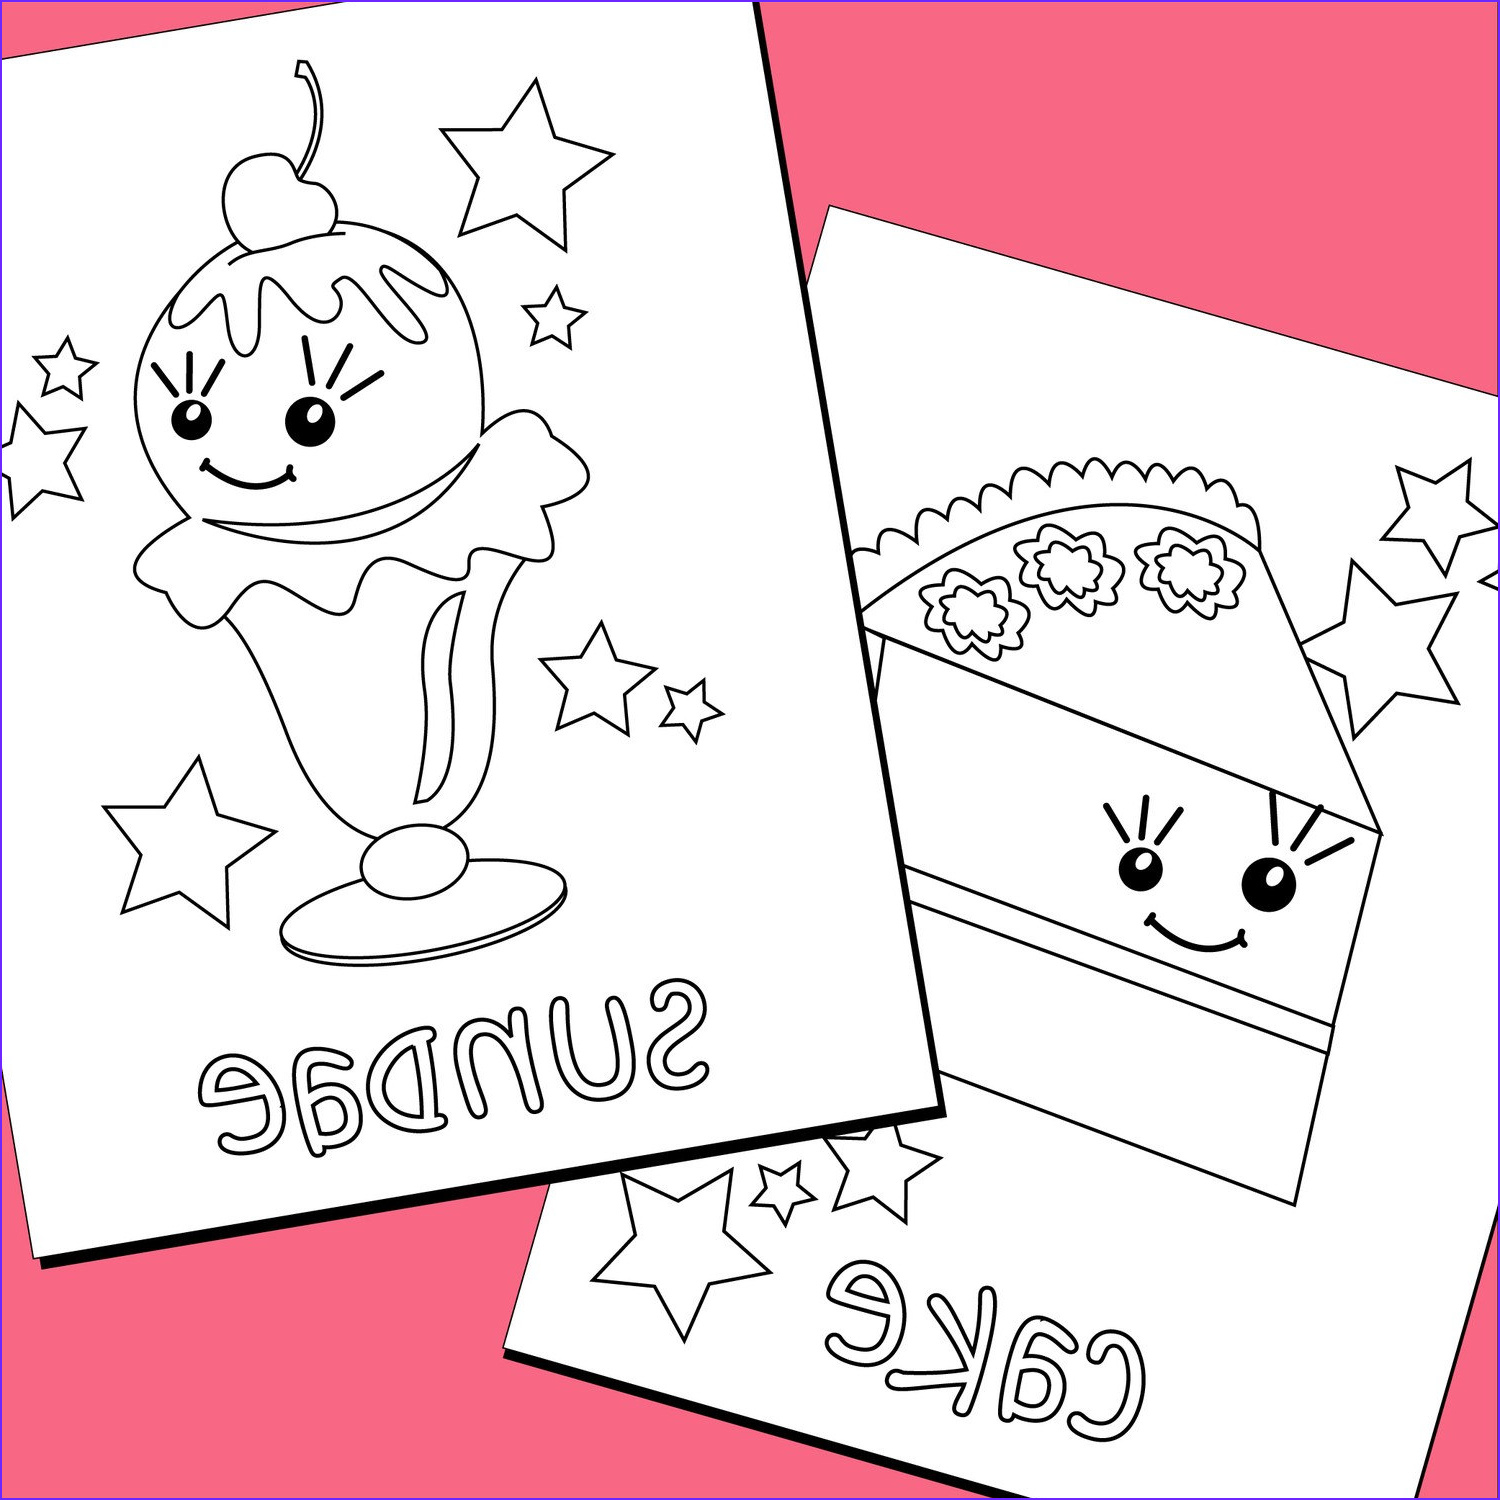 Sweets Coloring Pages Cool Gallery Colouring Pages Sweet Treats Printable Pdf Downloadable